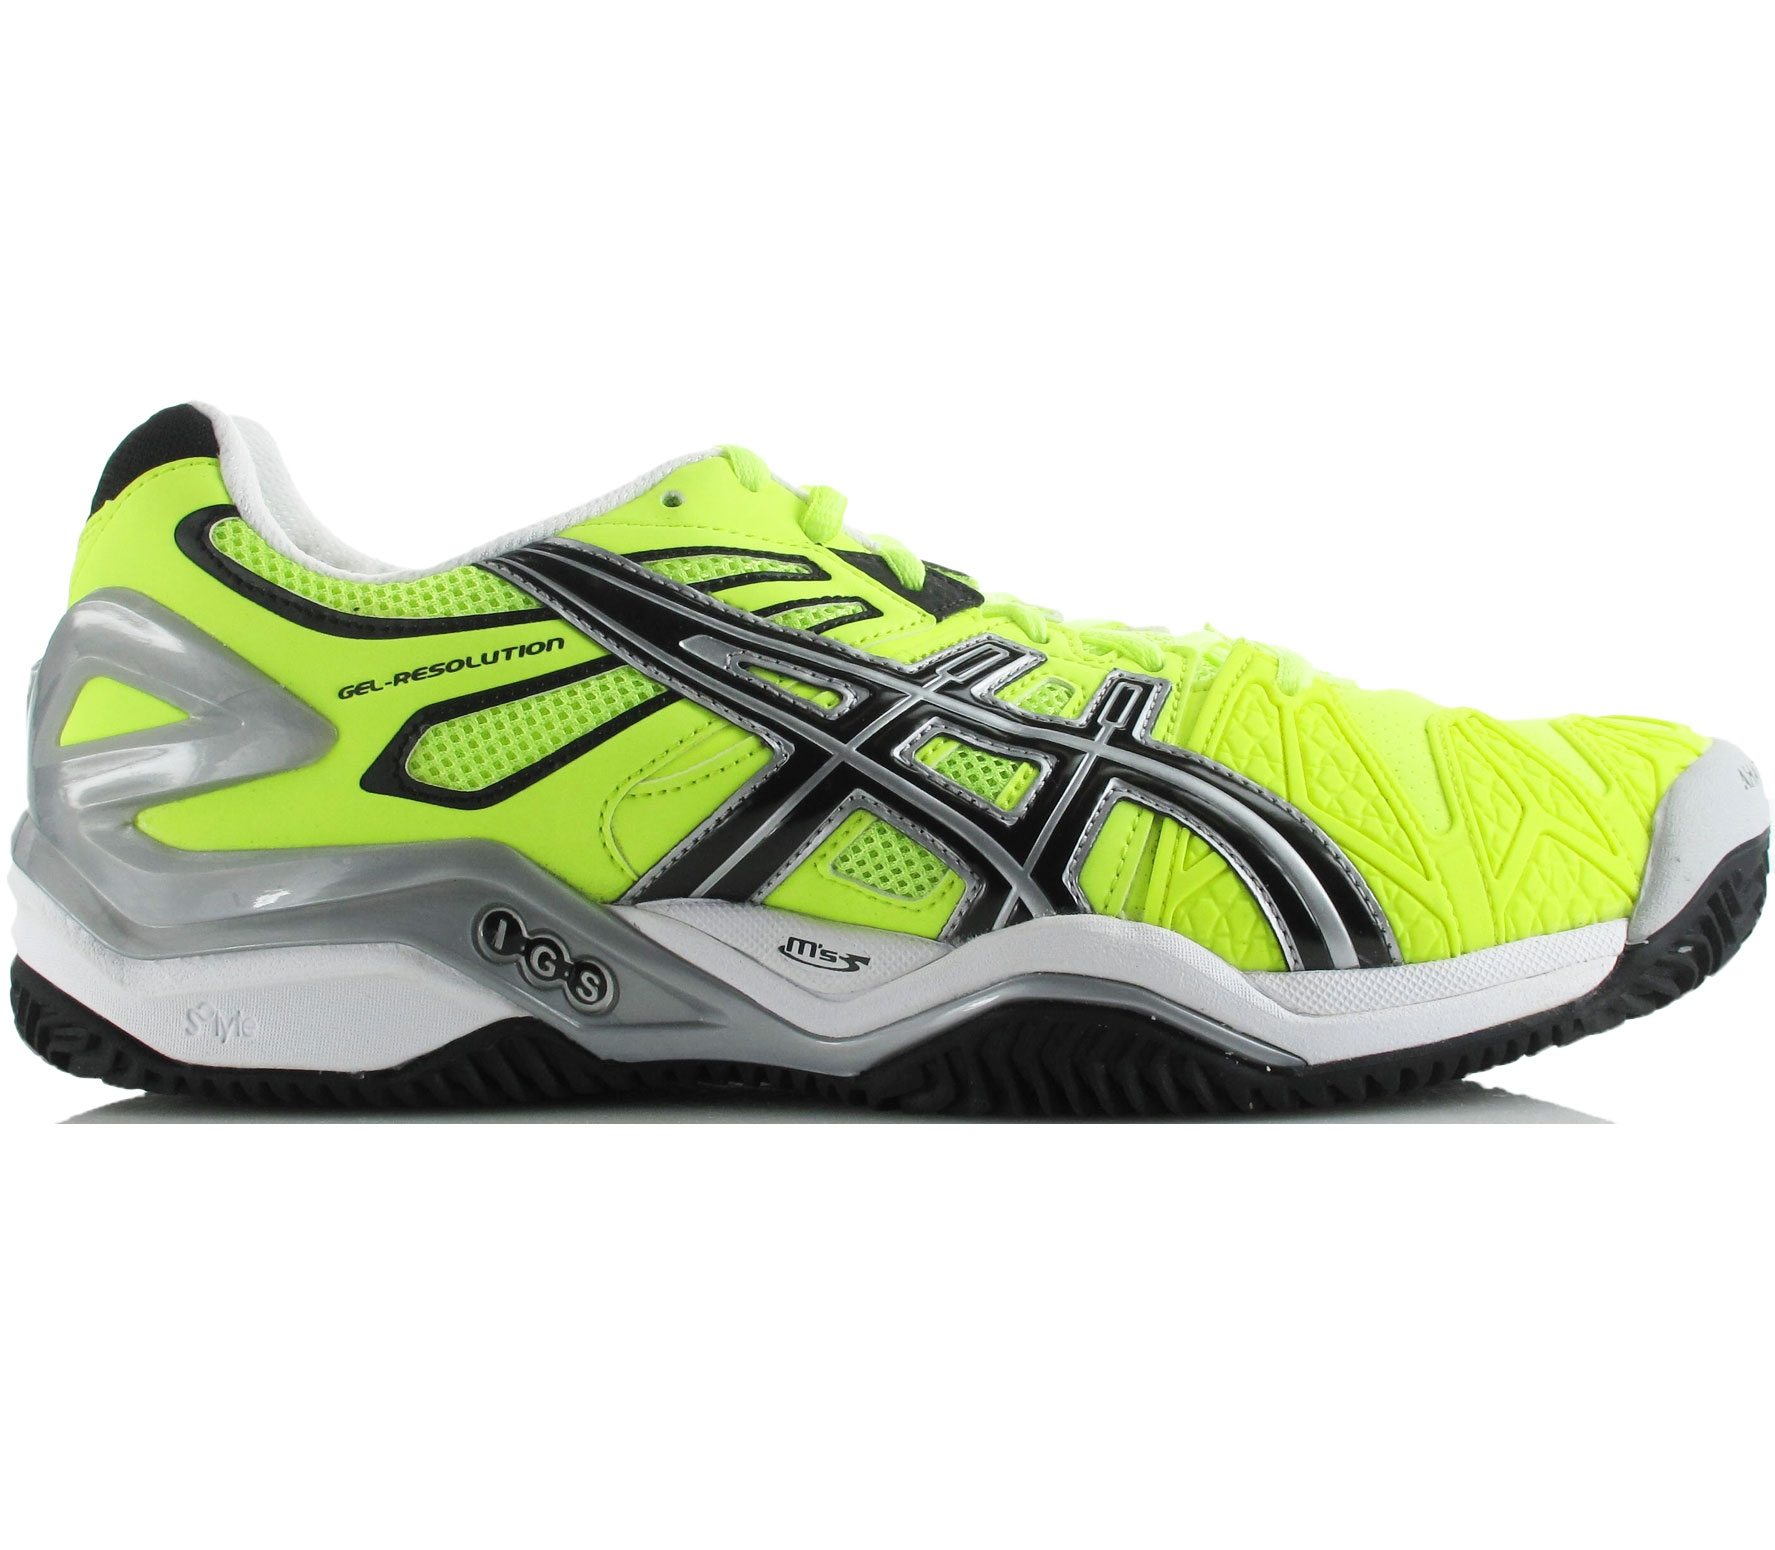 Asics - Tennis Shoes Men Gel Resolution 5 Clay